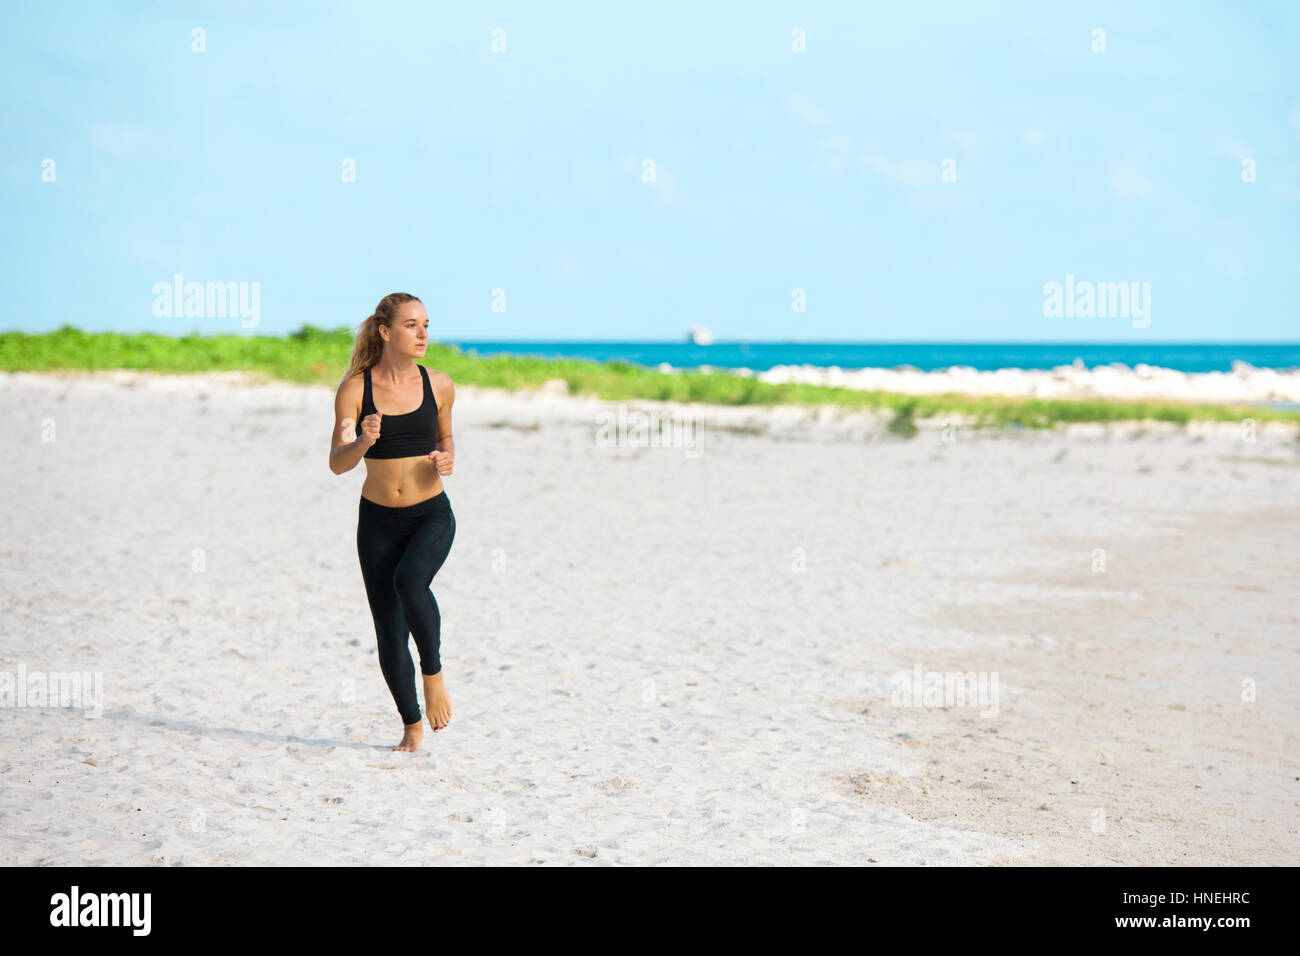 young fitness woman running at beach - Stock Image